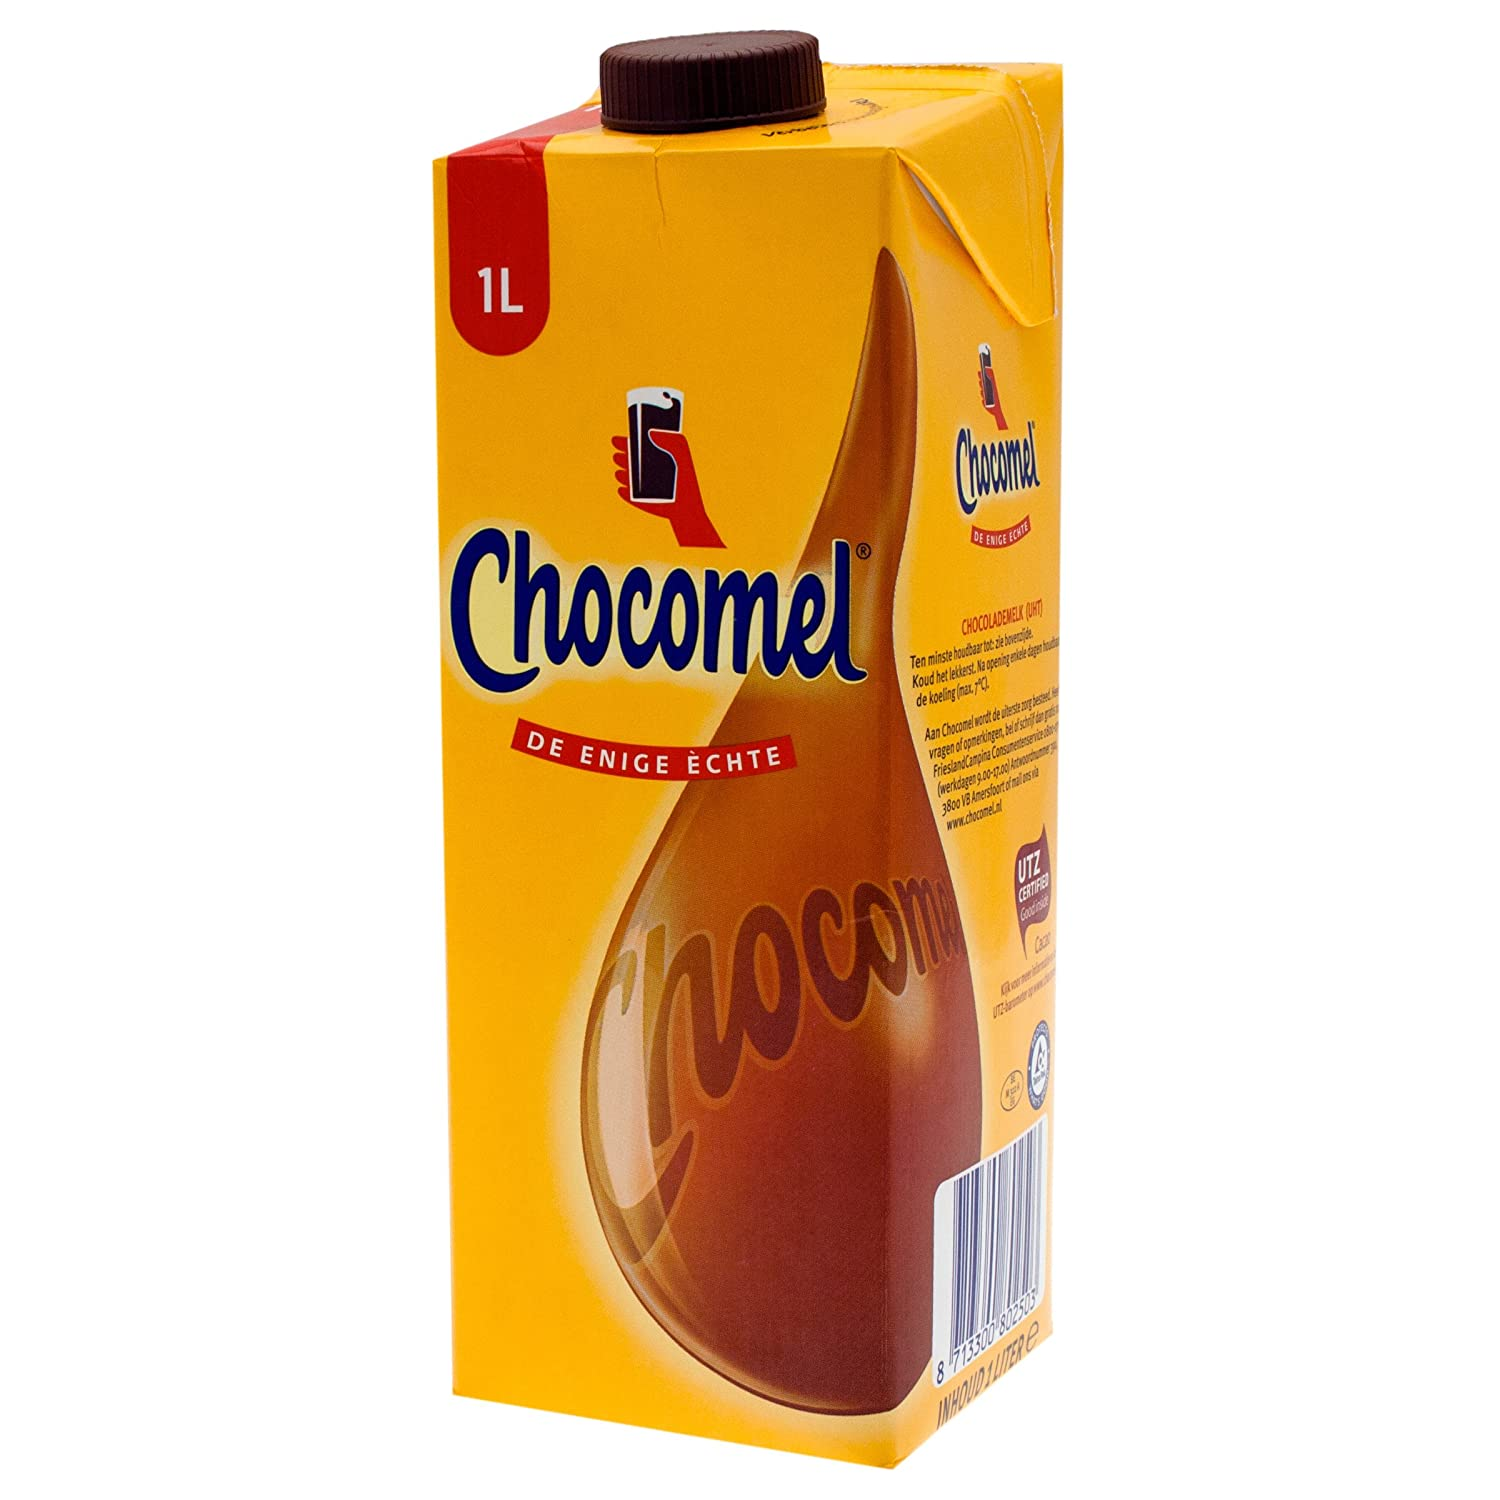 Chocomel Chocolate Milk Drink, Juice Box, 6 x 200 Milliliter ...